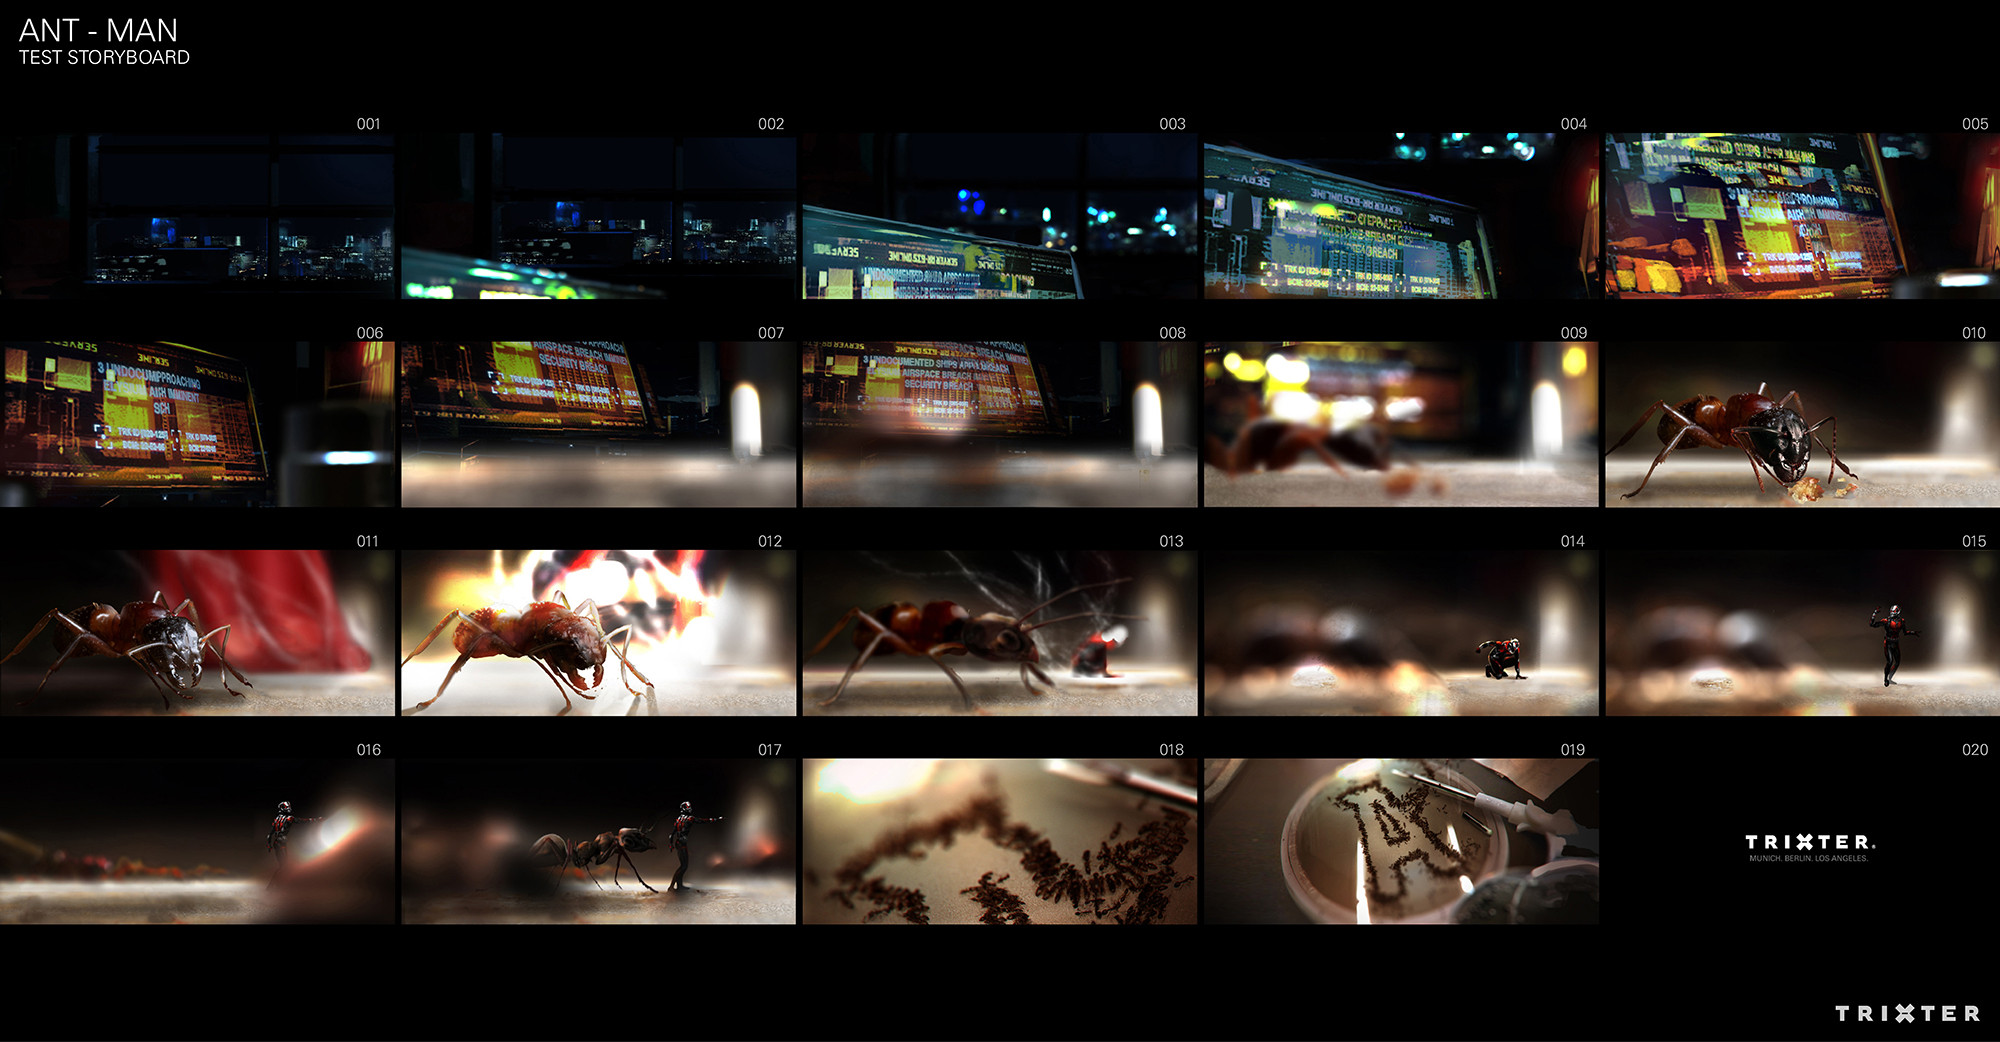 The storyboard.